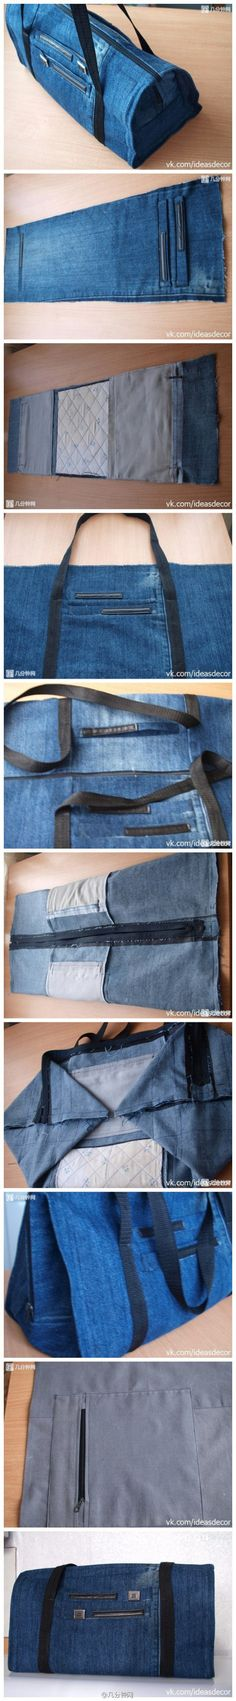 Several bags made from denim!